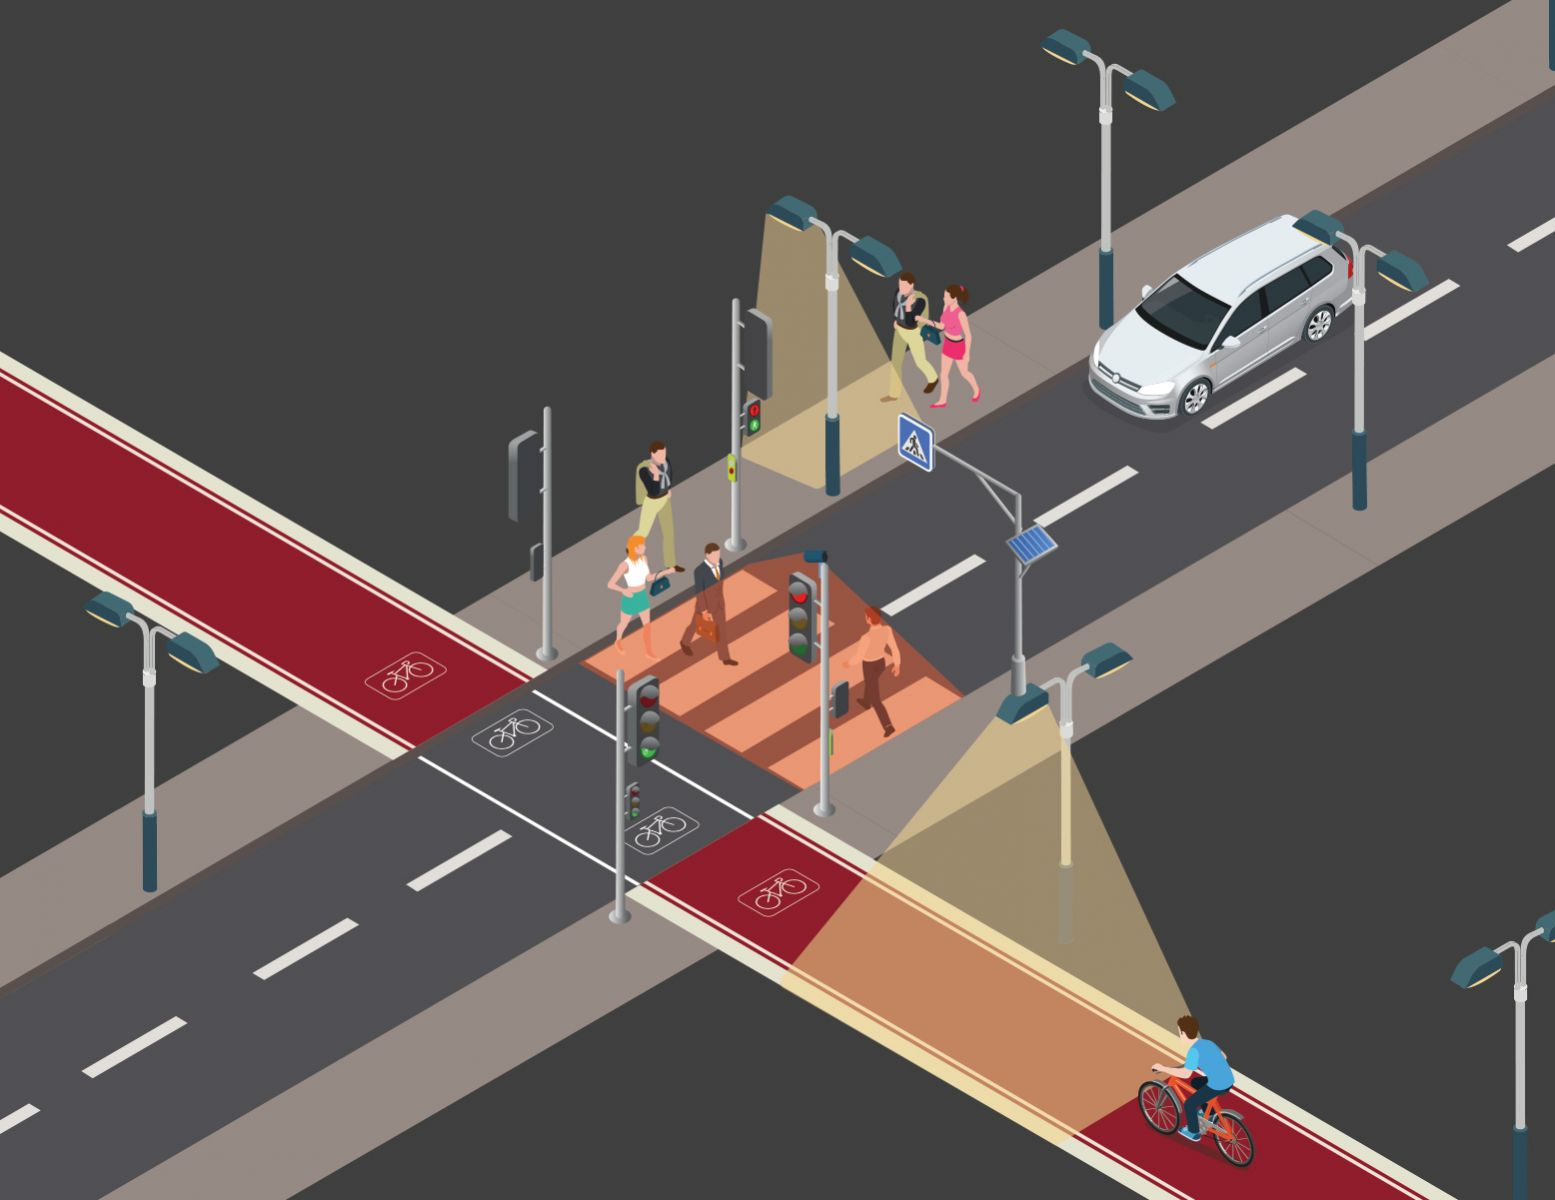 Icoms Detections TMA-011 Radar Detection for Pedestrians and Bicycles